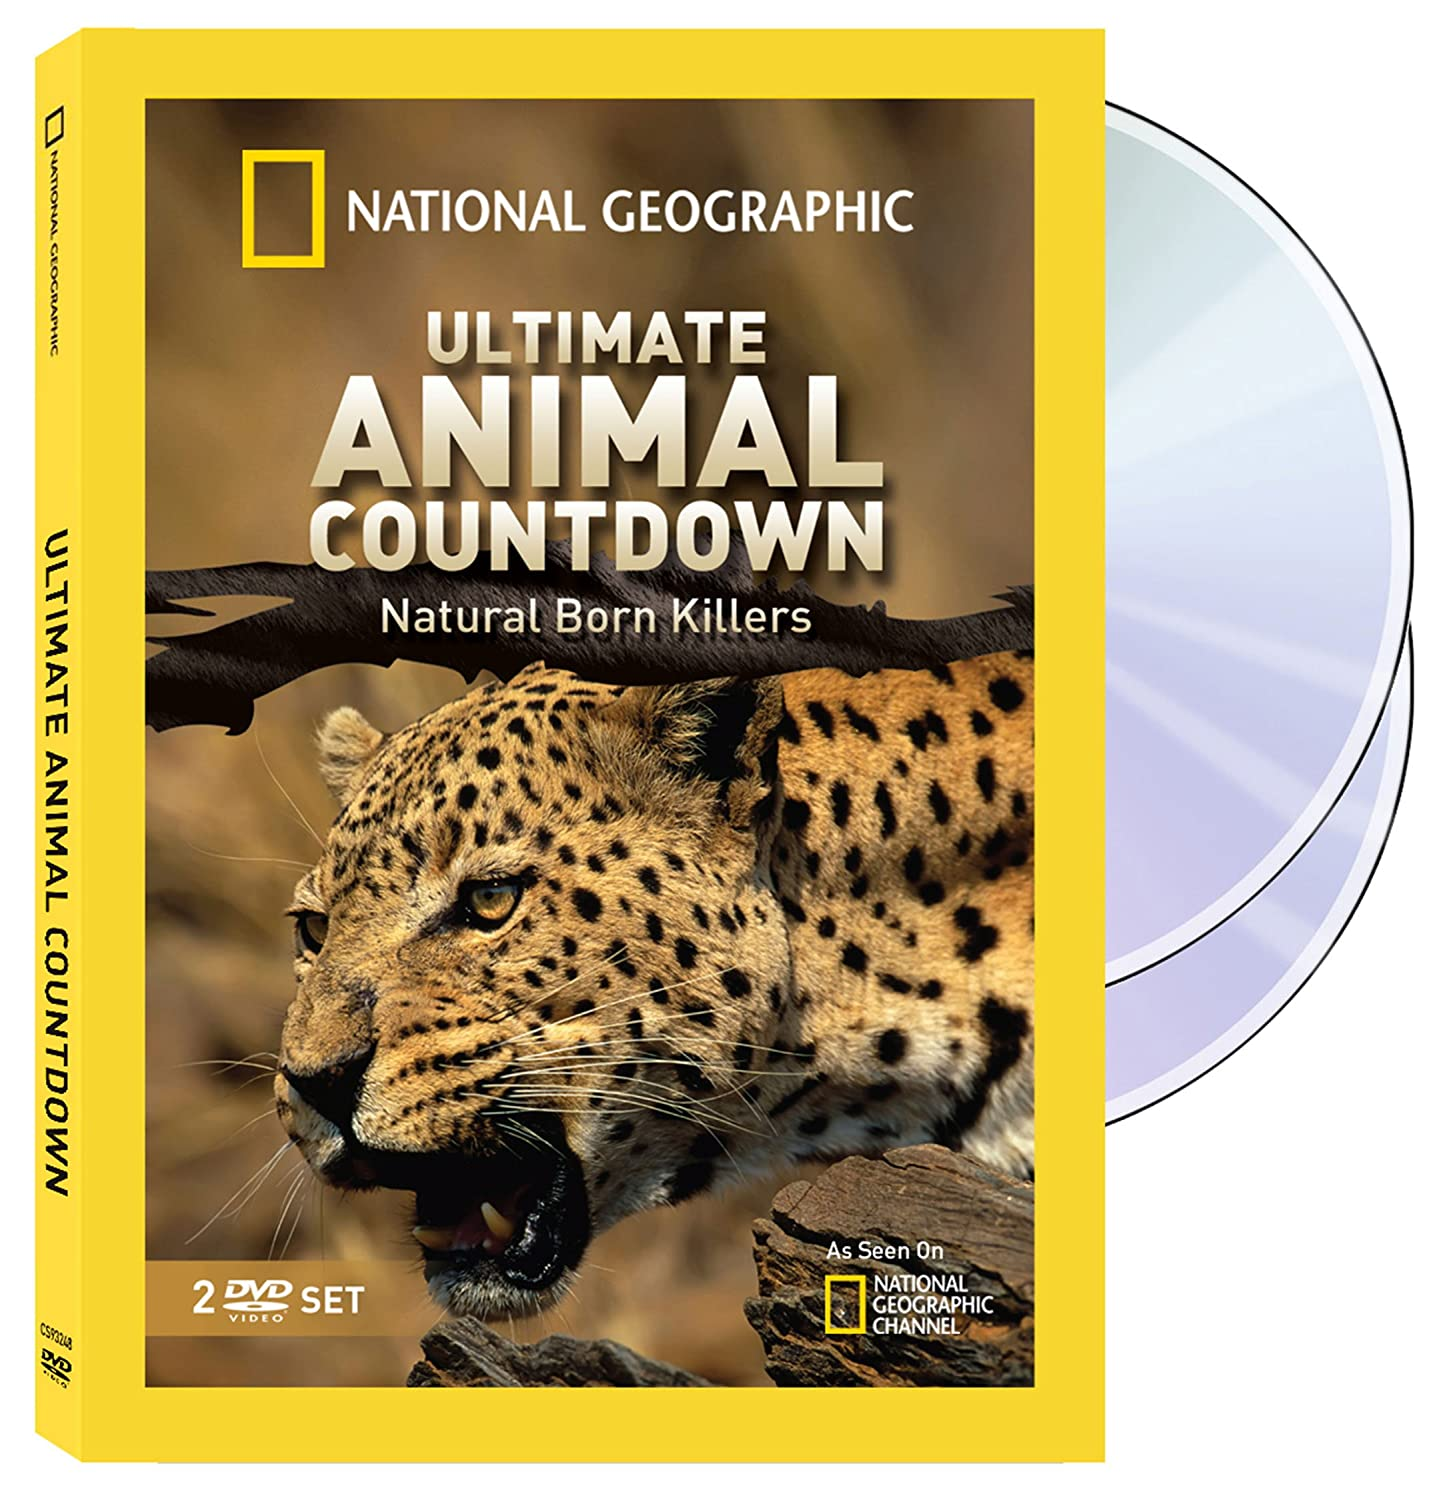 National Geographic - Ultimate Animal Countdown : Natural Born Killers